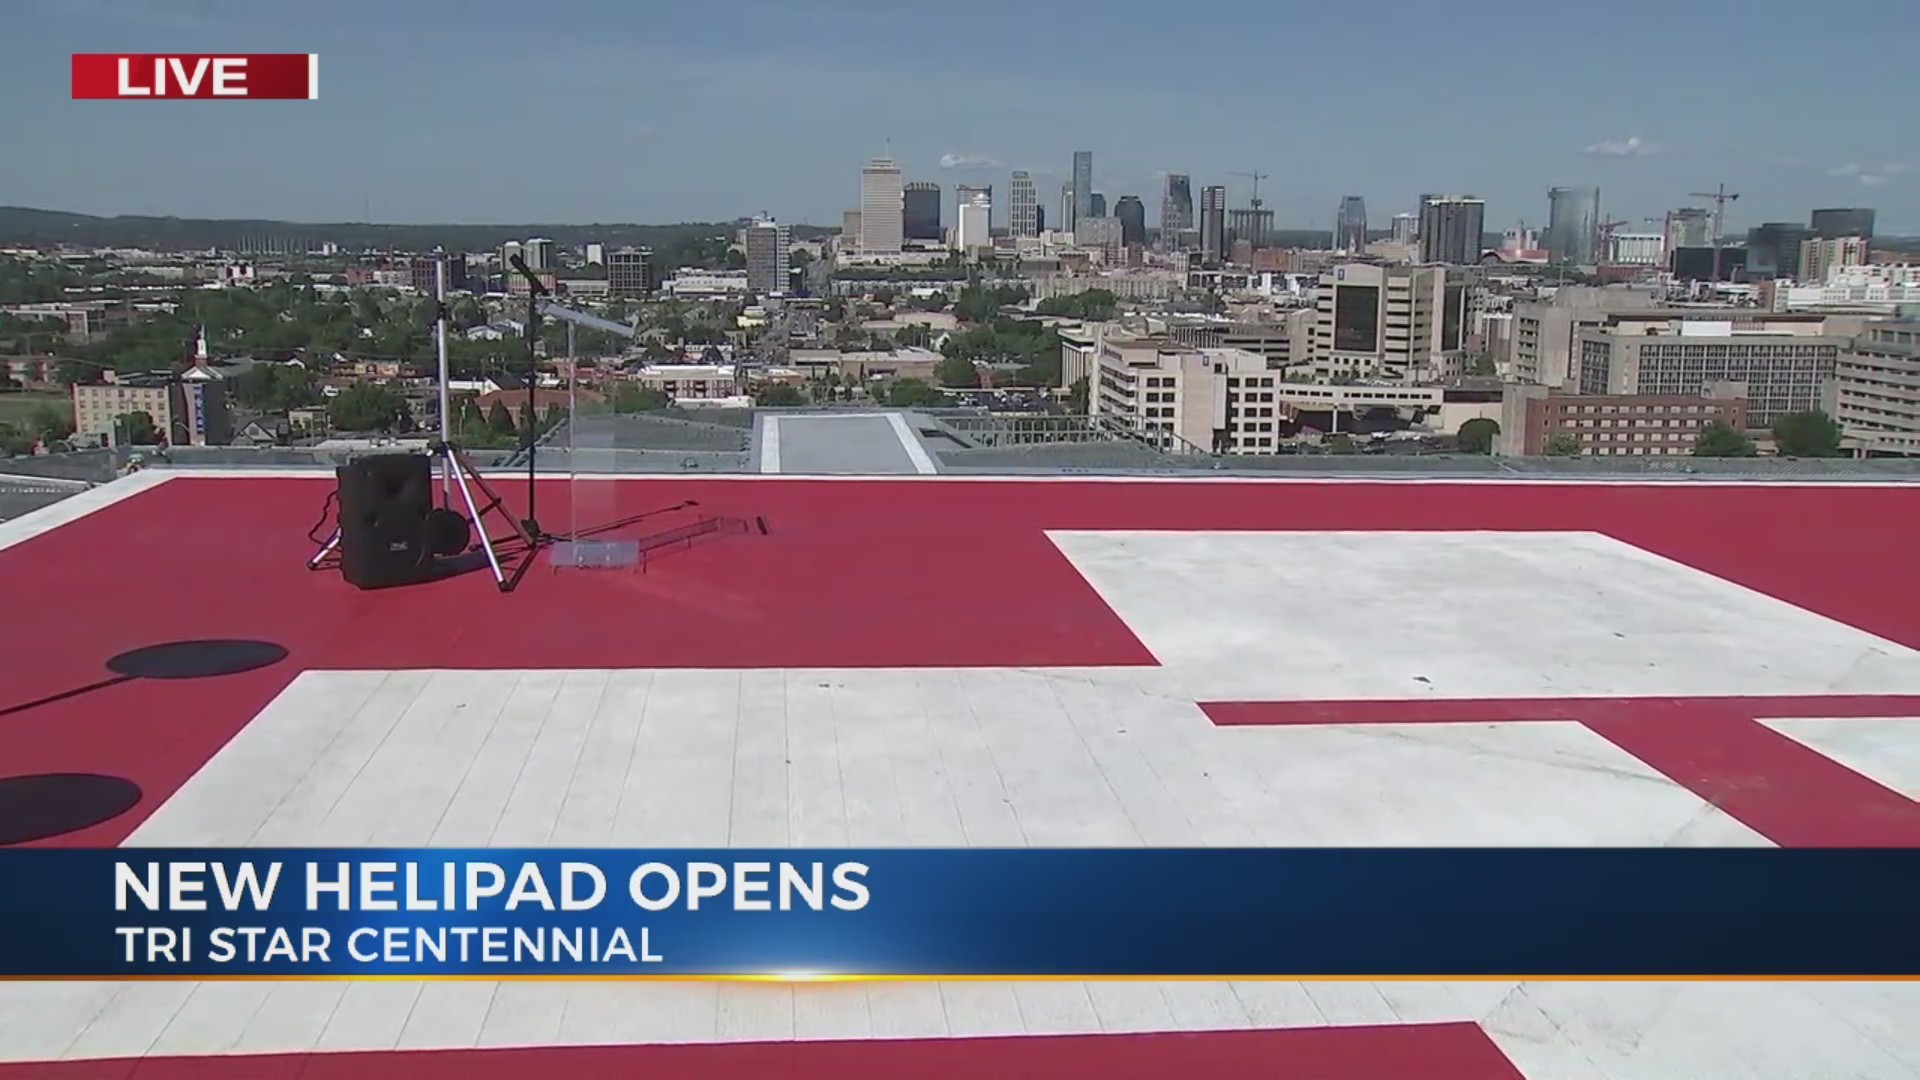 New Helipad on TriStar Centennial